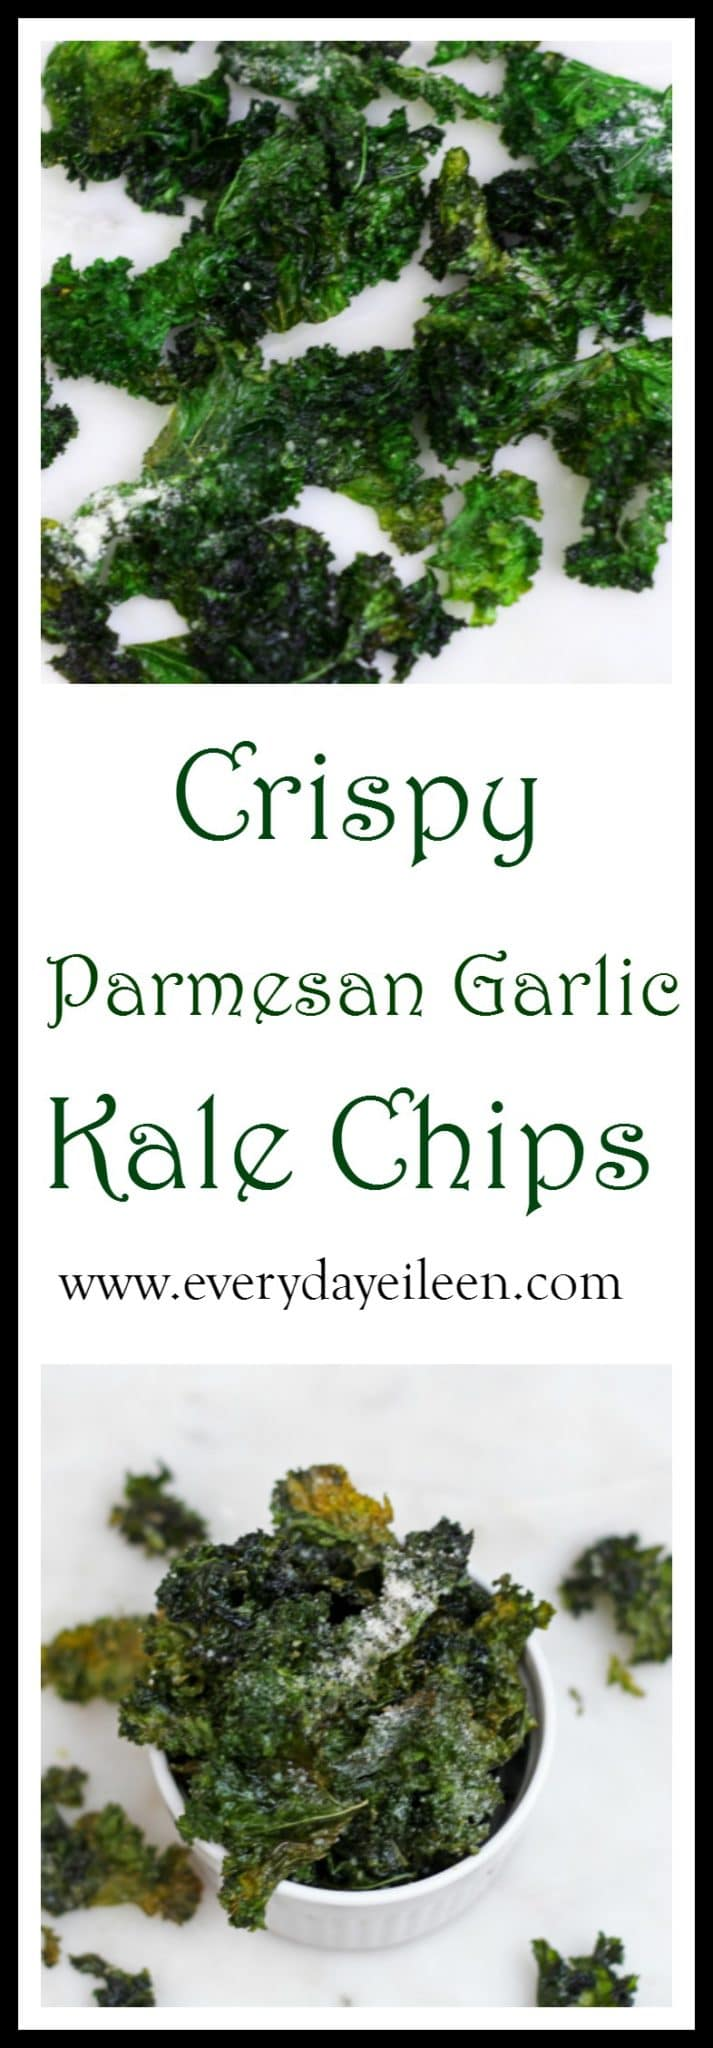 parmesan-garlic-kale-chips